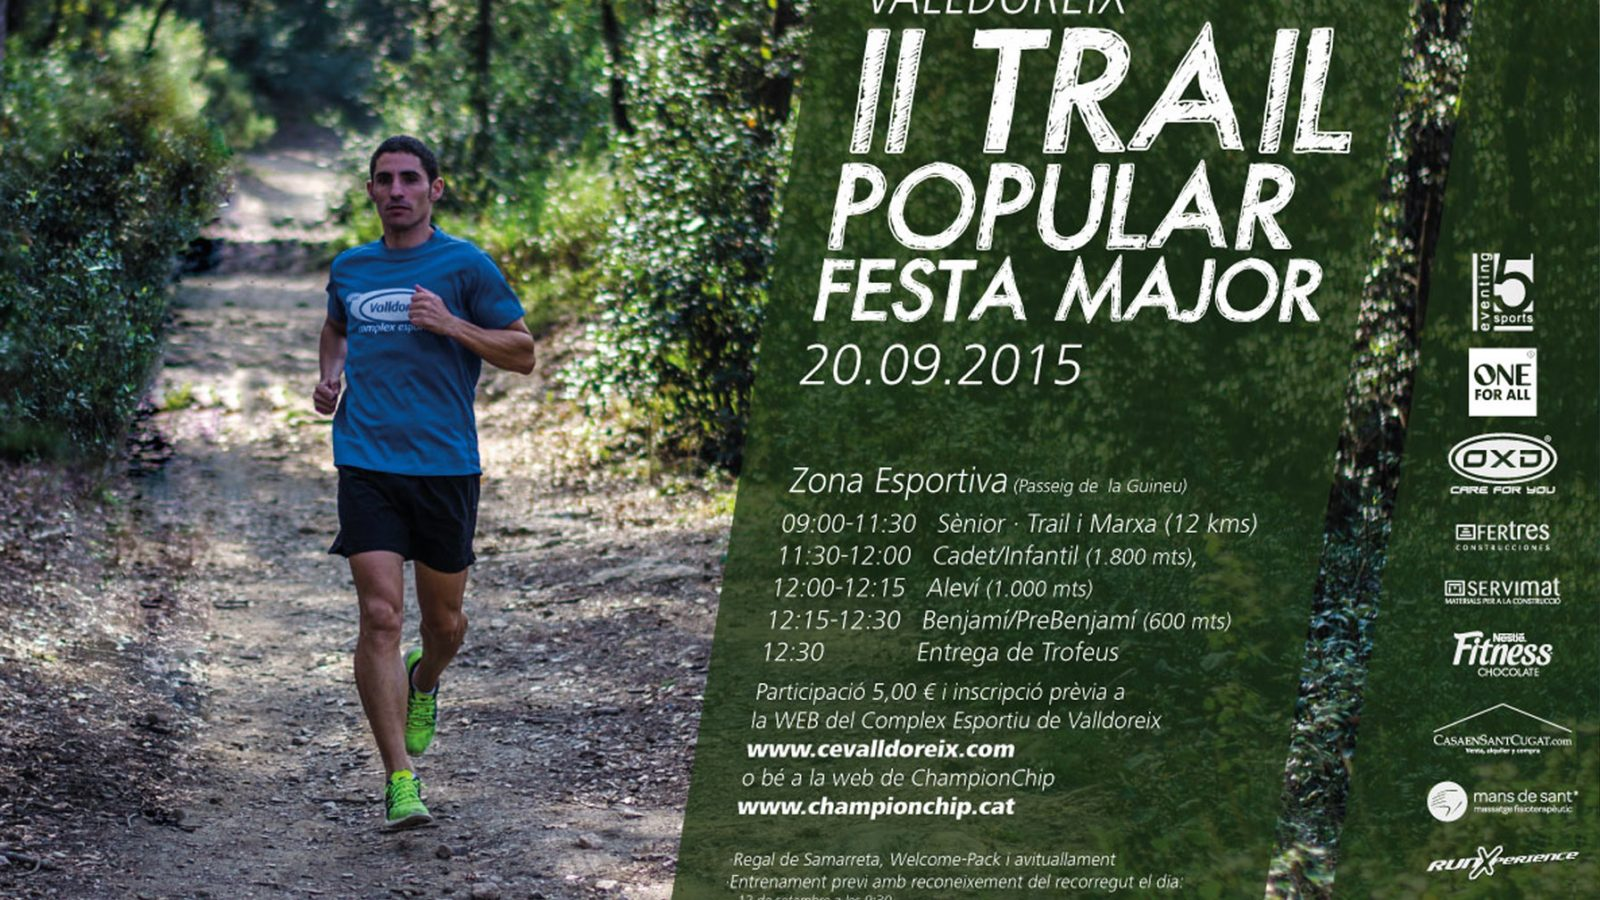 trail festa major valldoreix